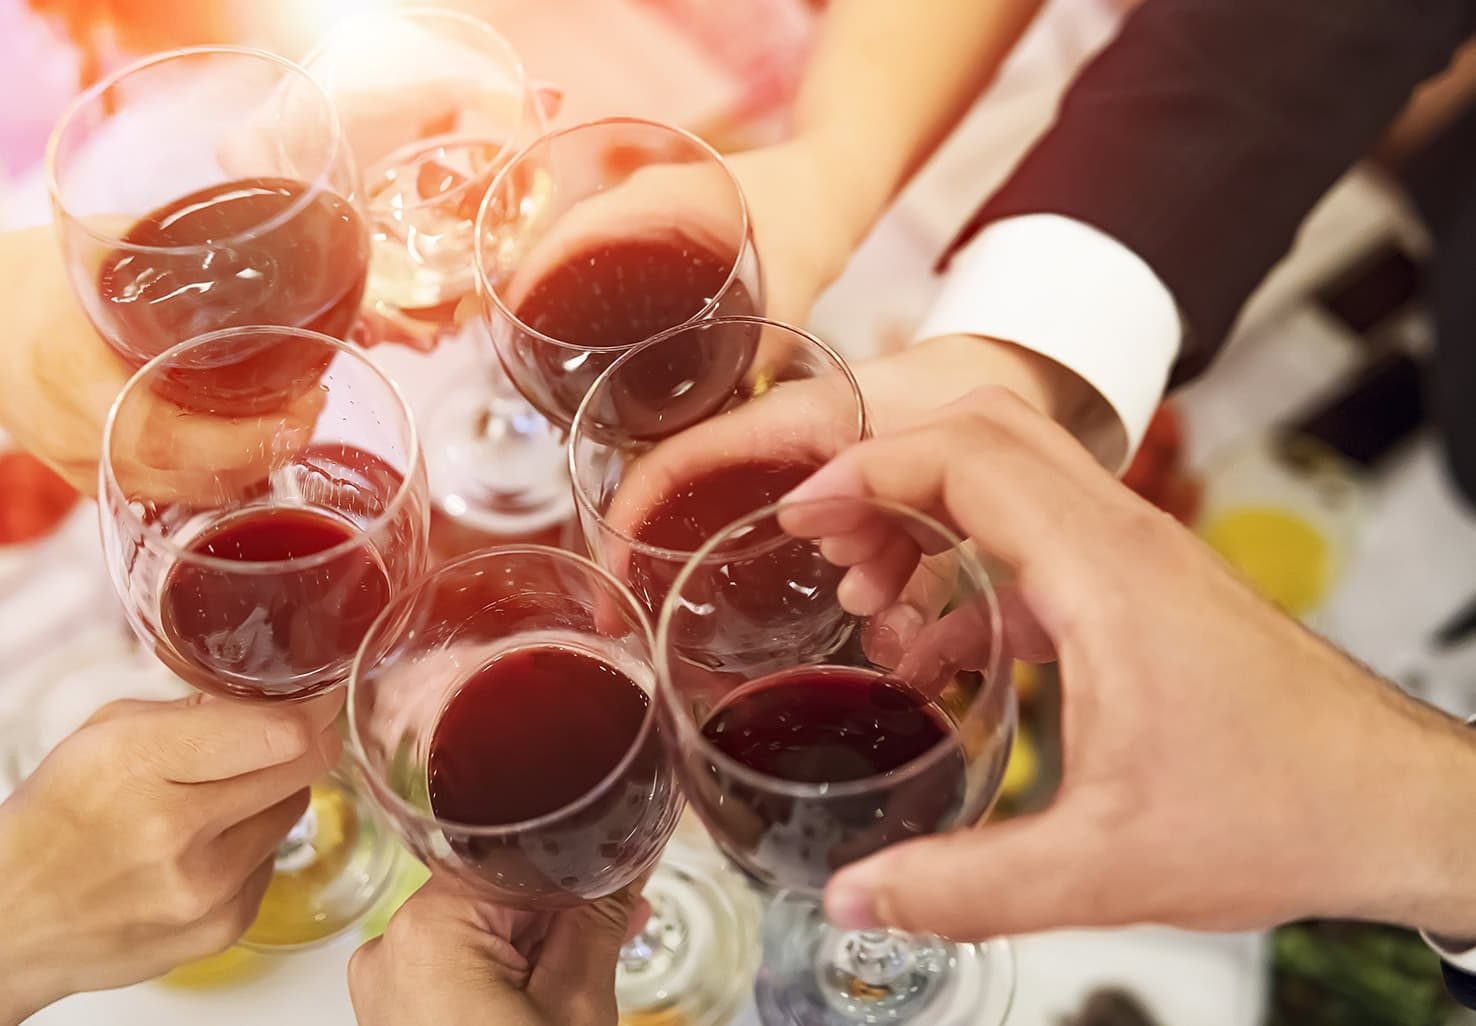 people toasting with wine glasses over dinner